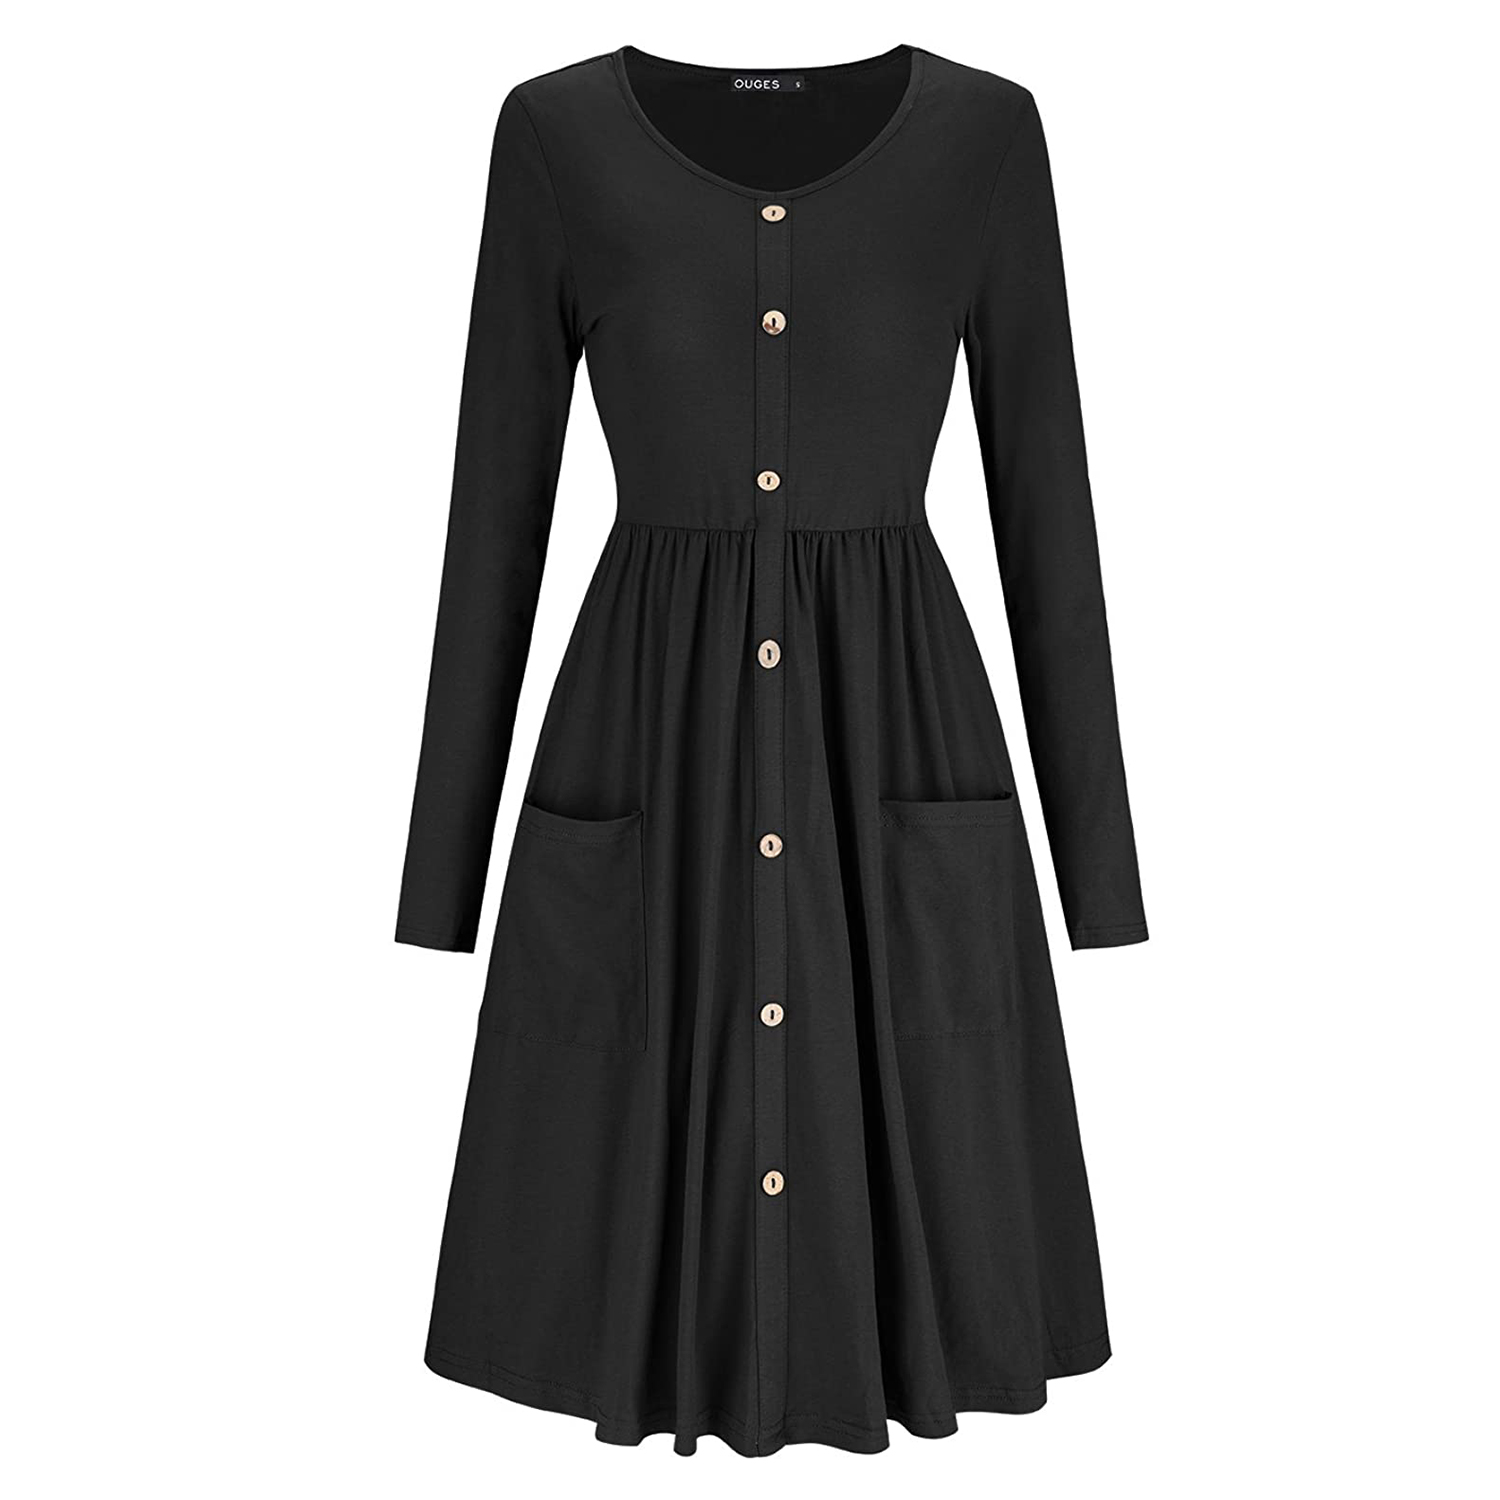 OUGES Women's V Neck Button Down Skater Dress with Pockets